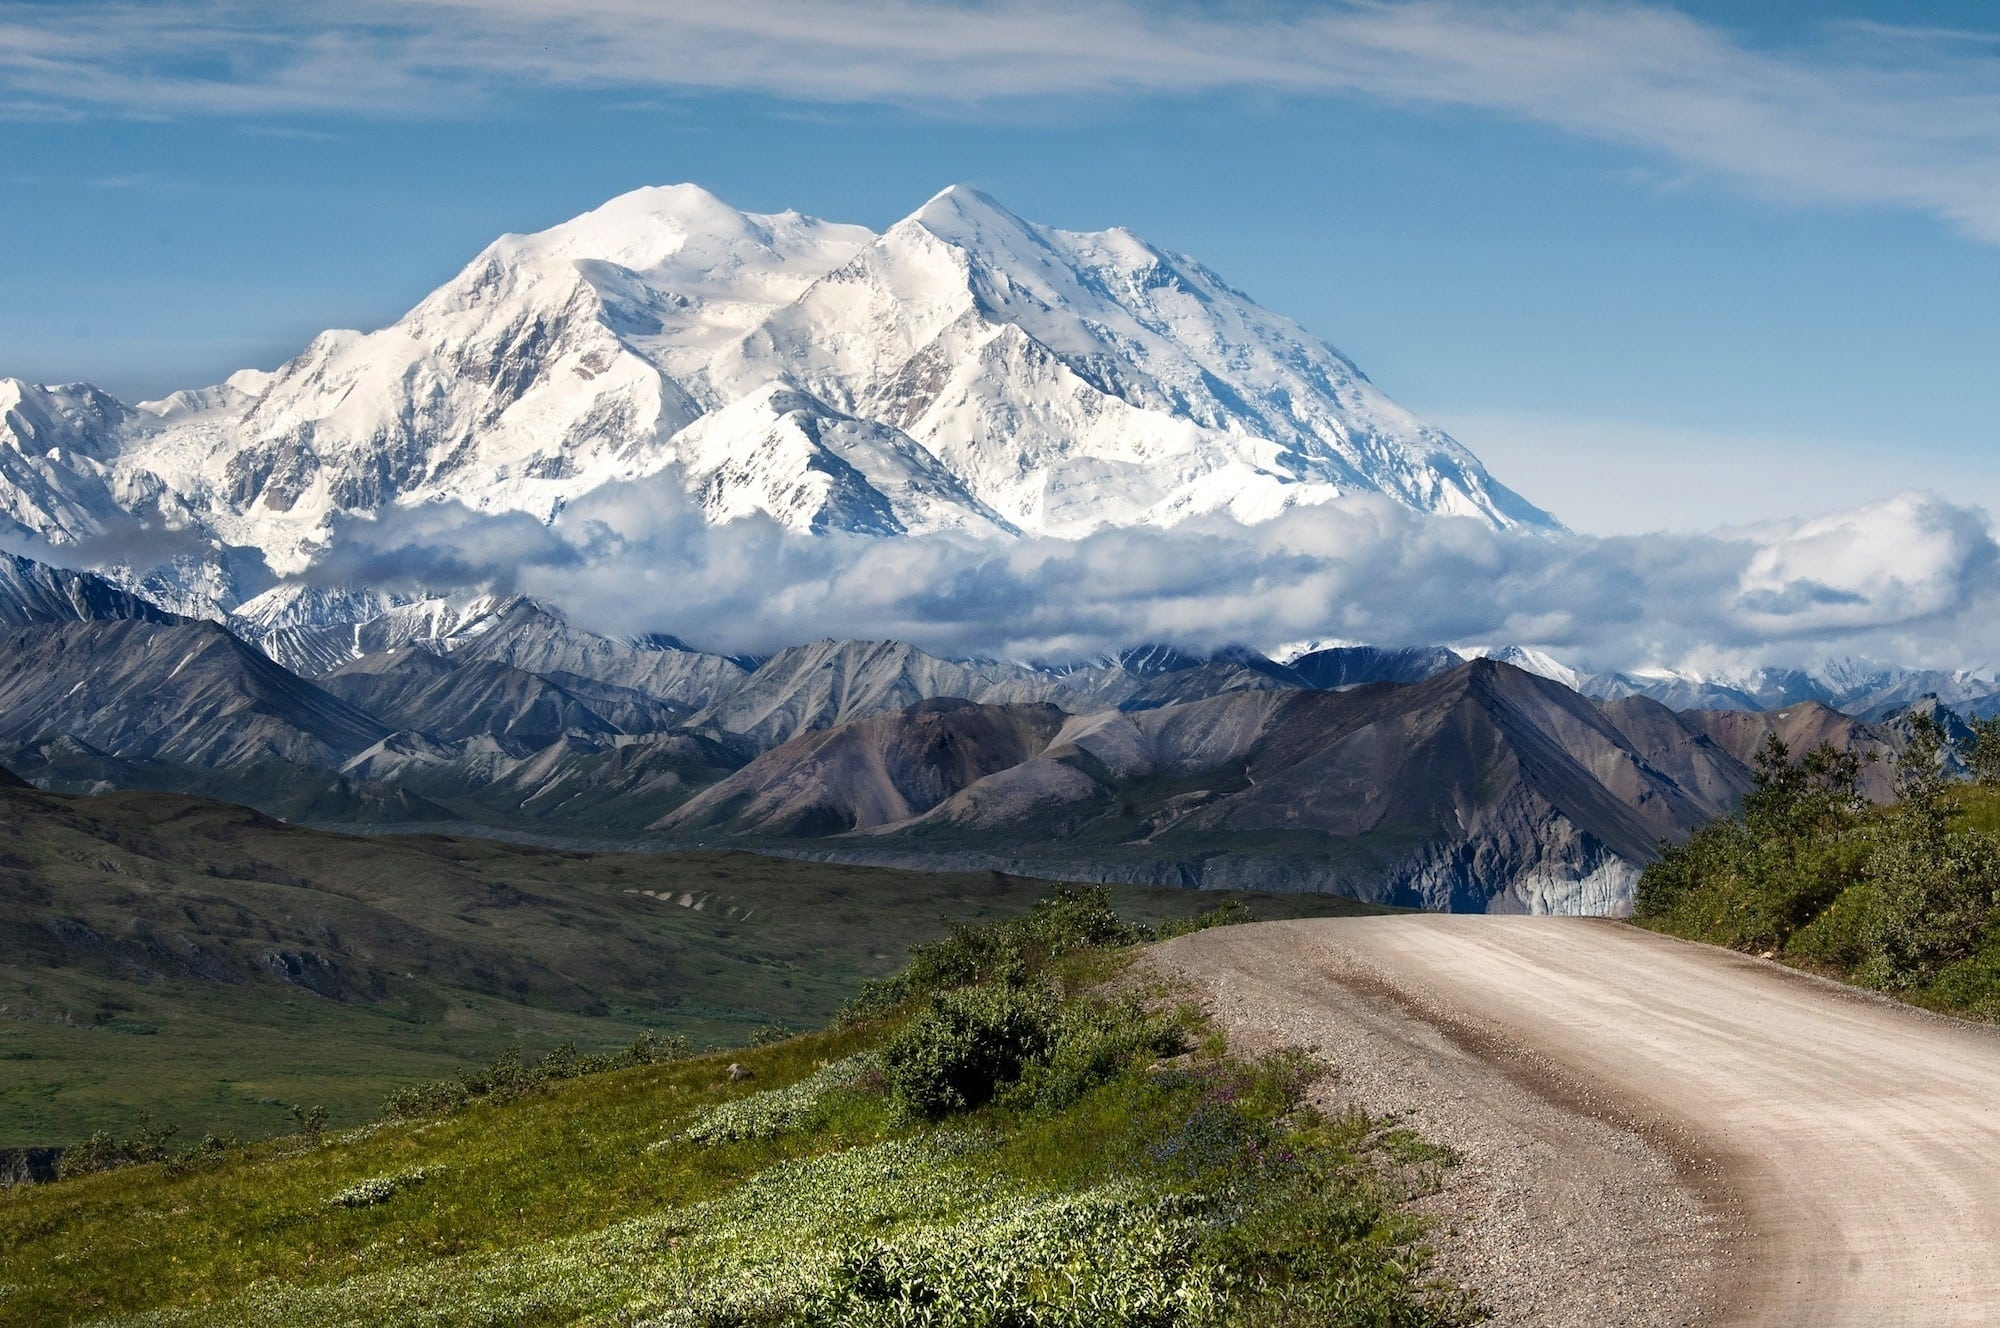 8-Day Alaska Road Trip Itinerary for Adventure Travelers